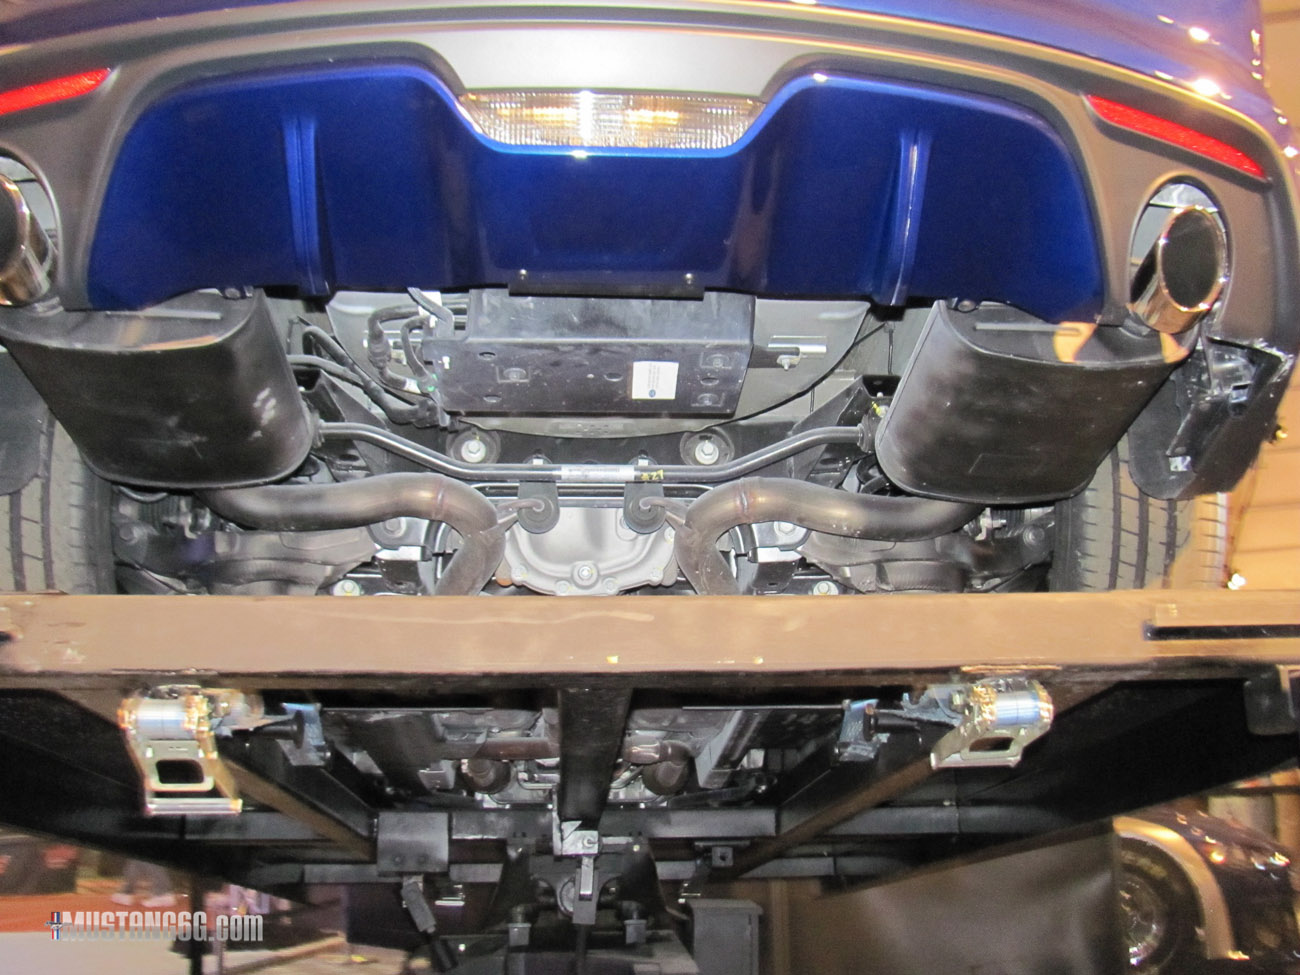 2016 Mustang V6 Exhaust >> More 2015 Mustang Undercarriage Photos | 2015+ Mustang Forum News Blog (S550 GT, GT350, GT500 ...